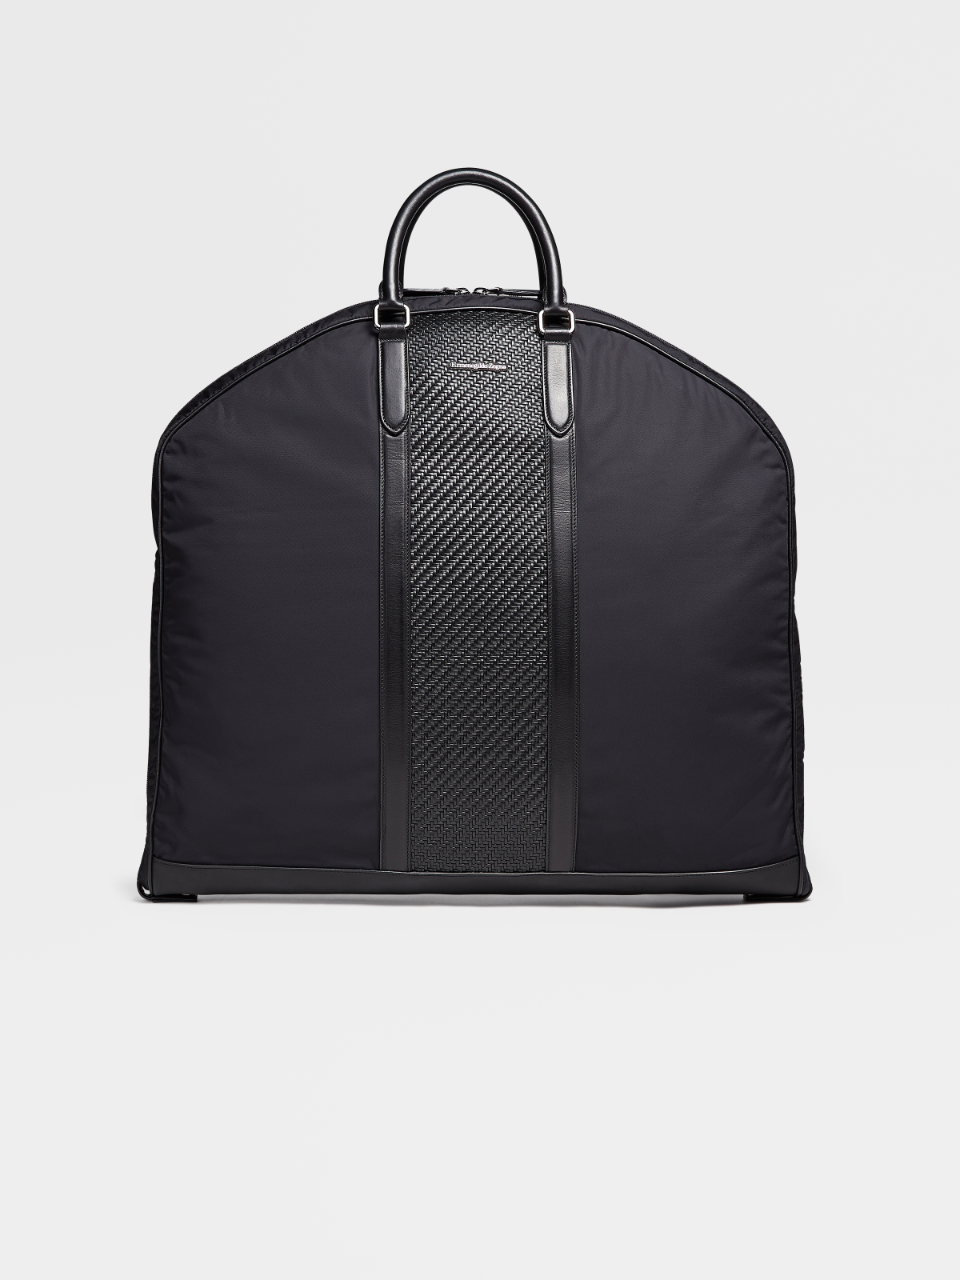 PELLETESSUTA™ Garment Bag